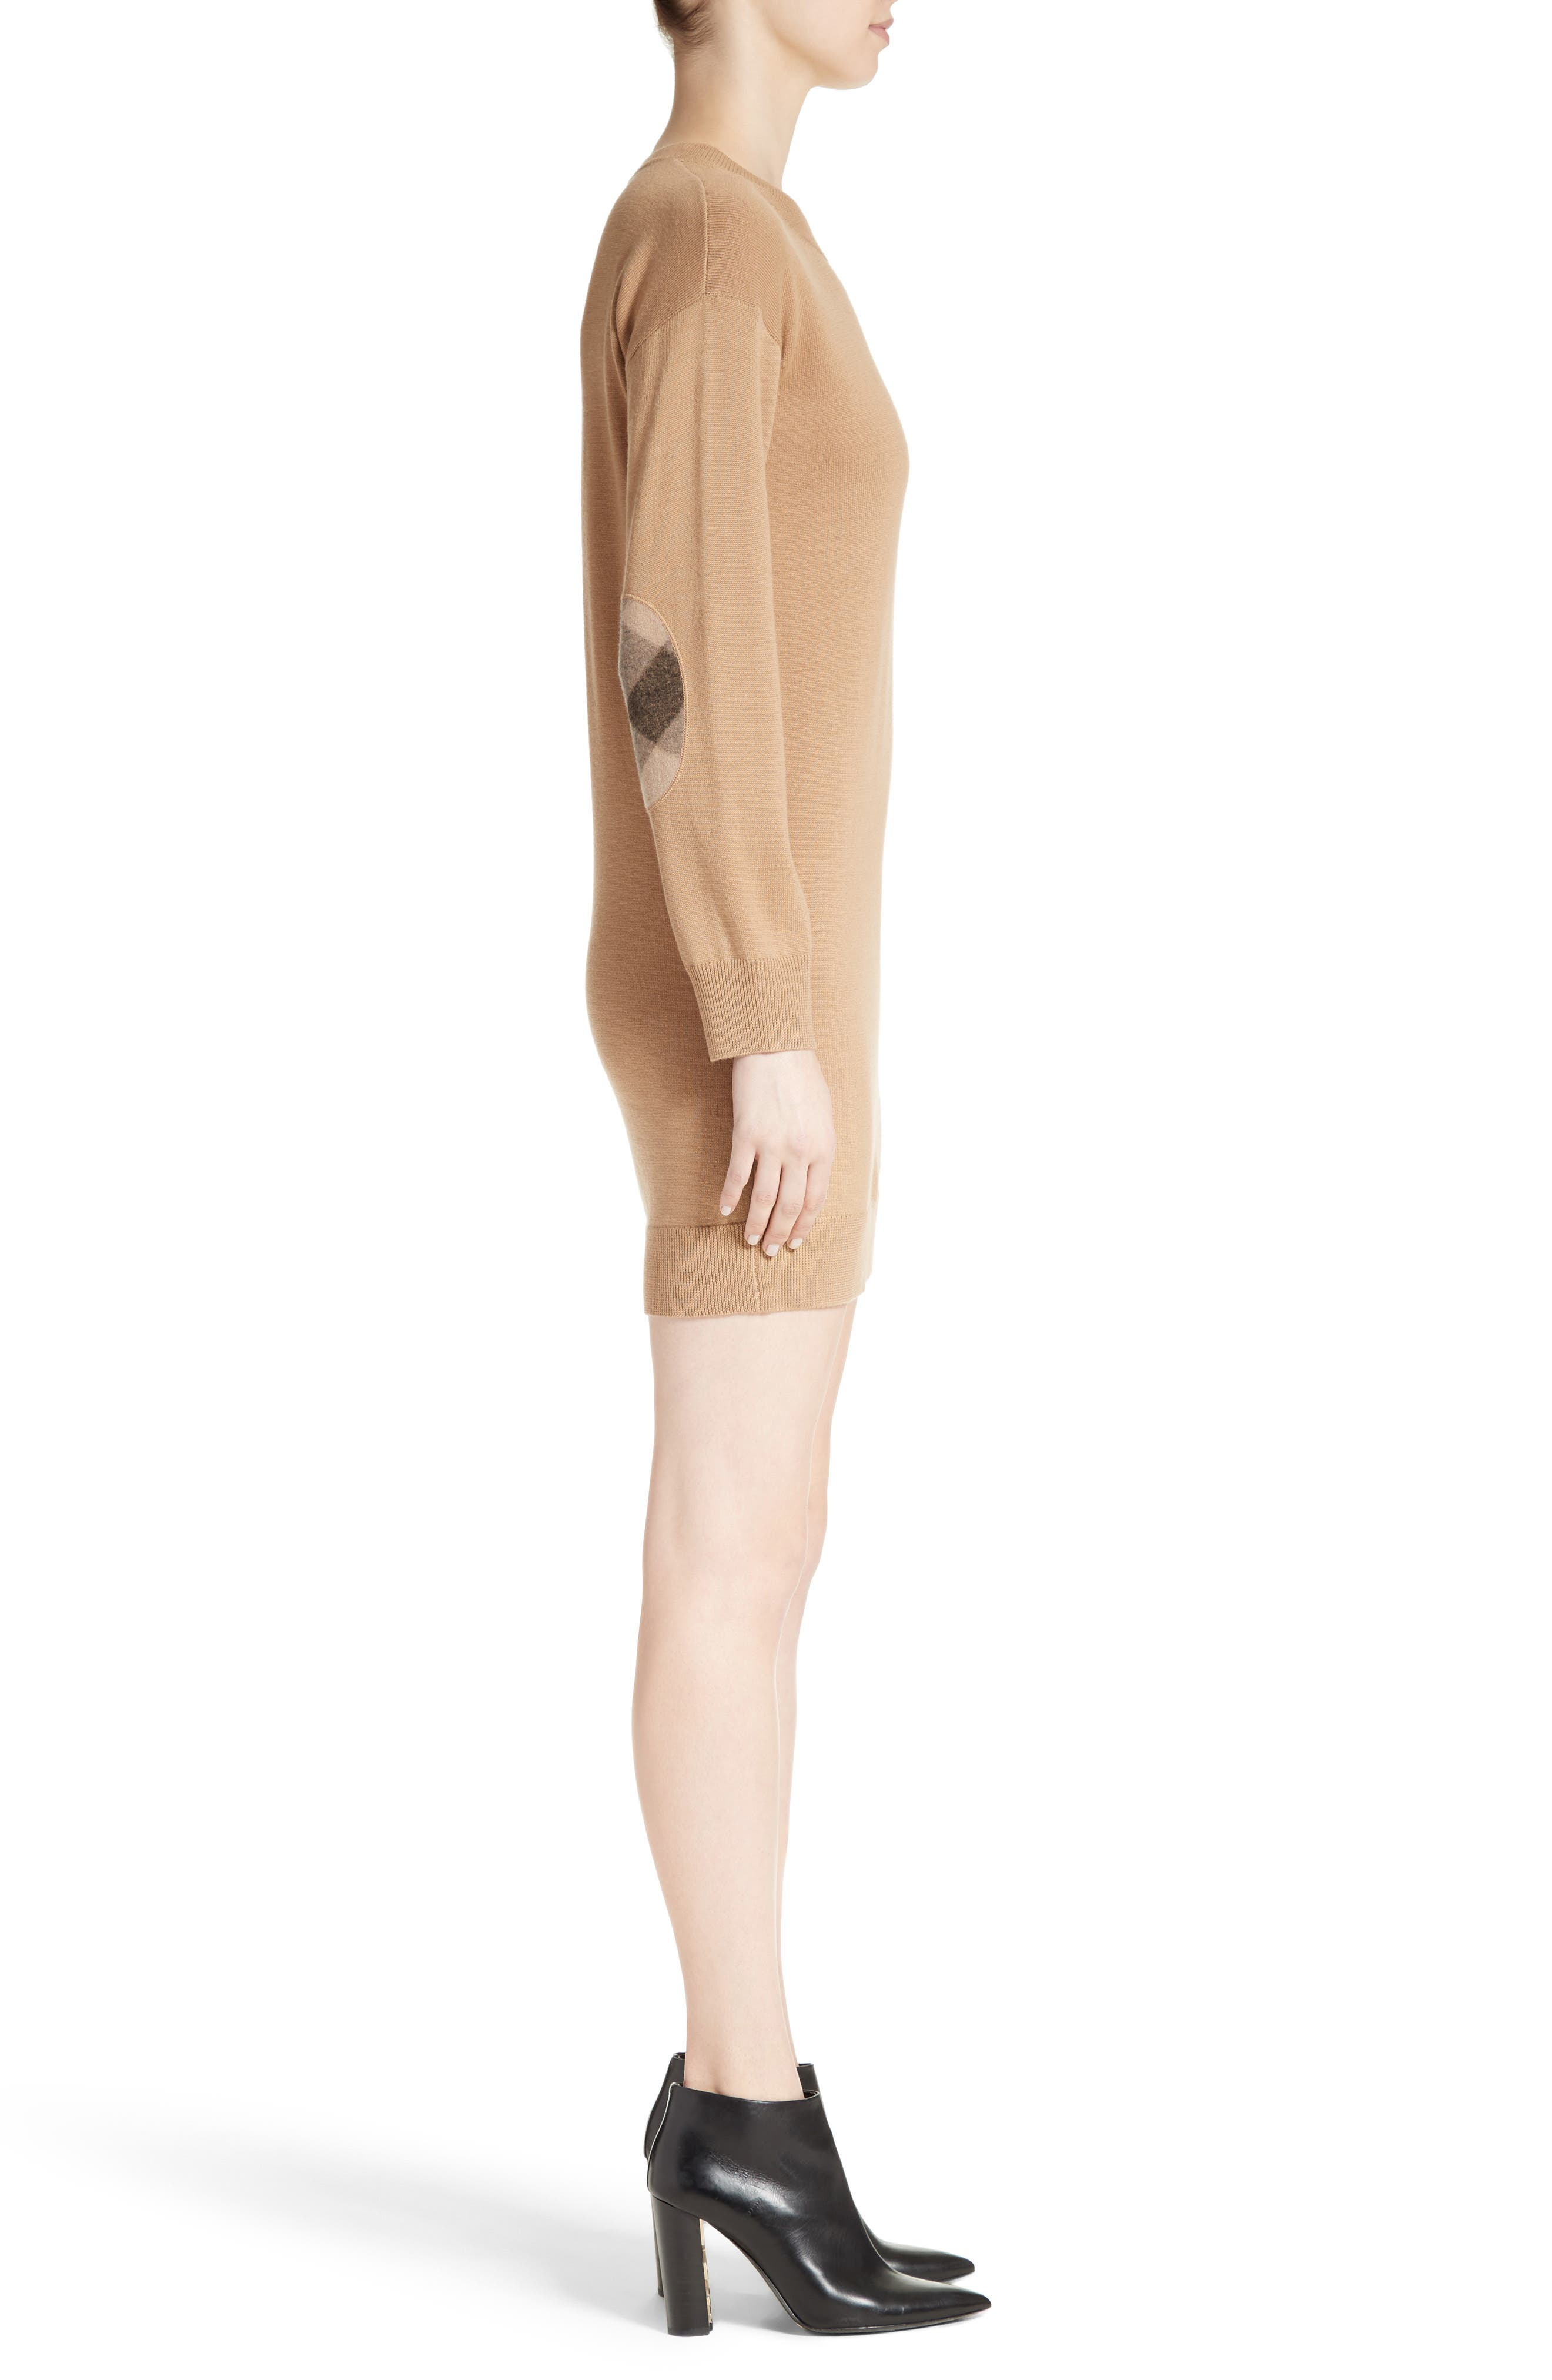 BURBERRY,                             Alewater Elbow Patch Merino Wool Dress,                             Alternate thumbnail 3, color,                             CAMEL